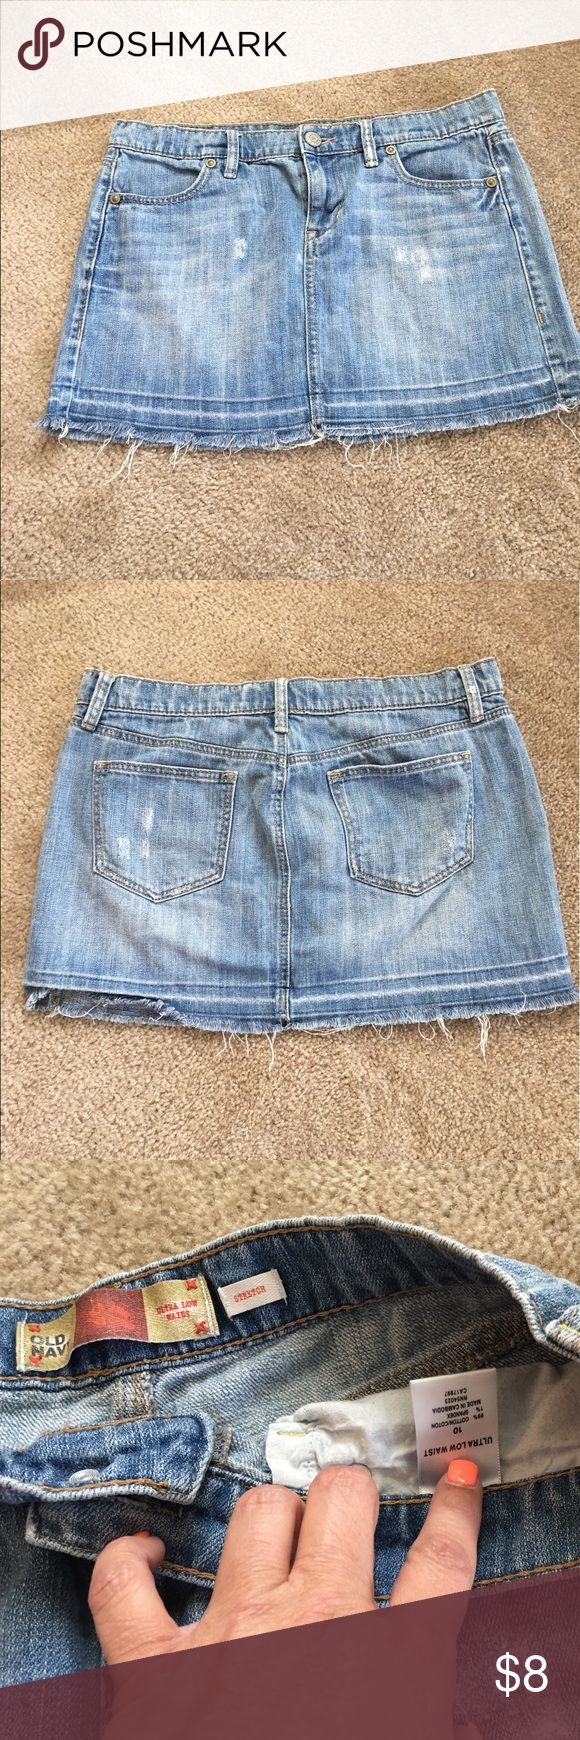 Old Navy Distressed Jean Skirt Great Skirt Old Navy Skirts Mini